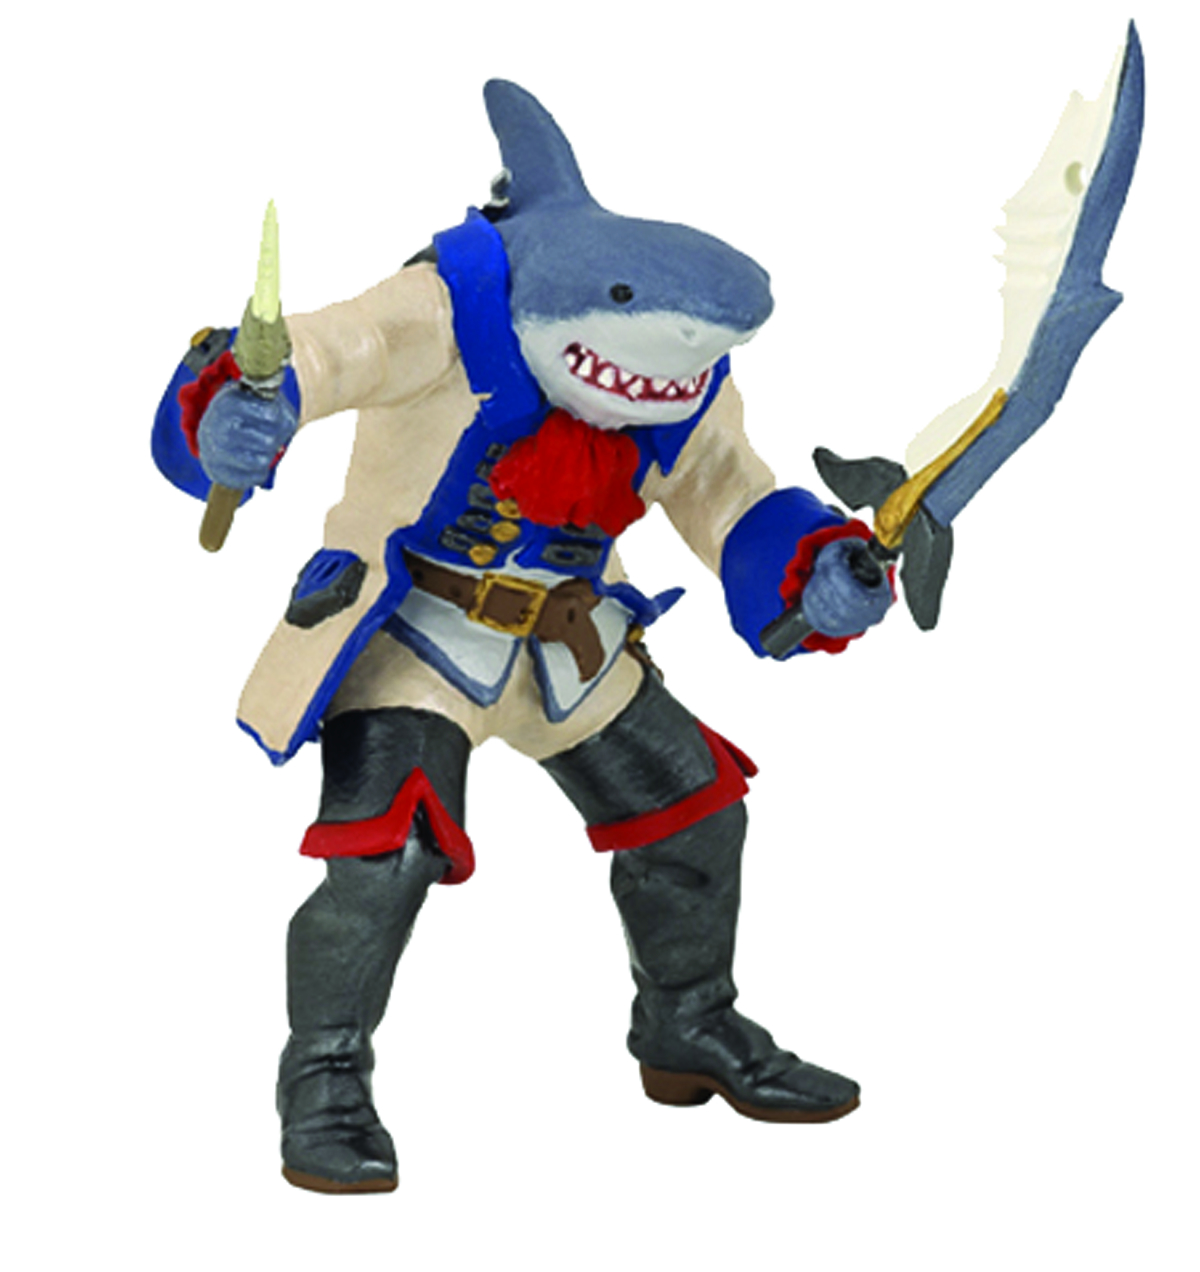 SHARK MUTANT PIRATE FIGURE